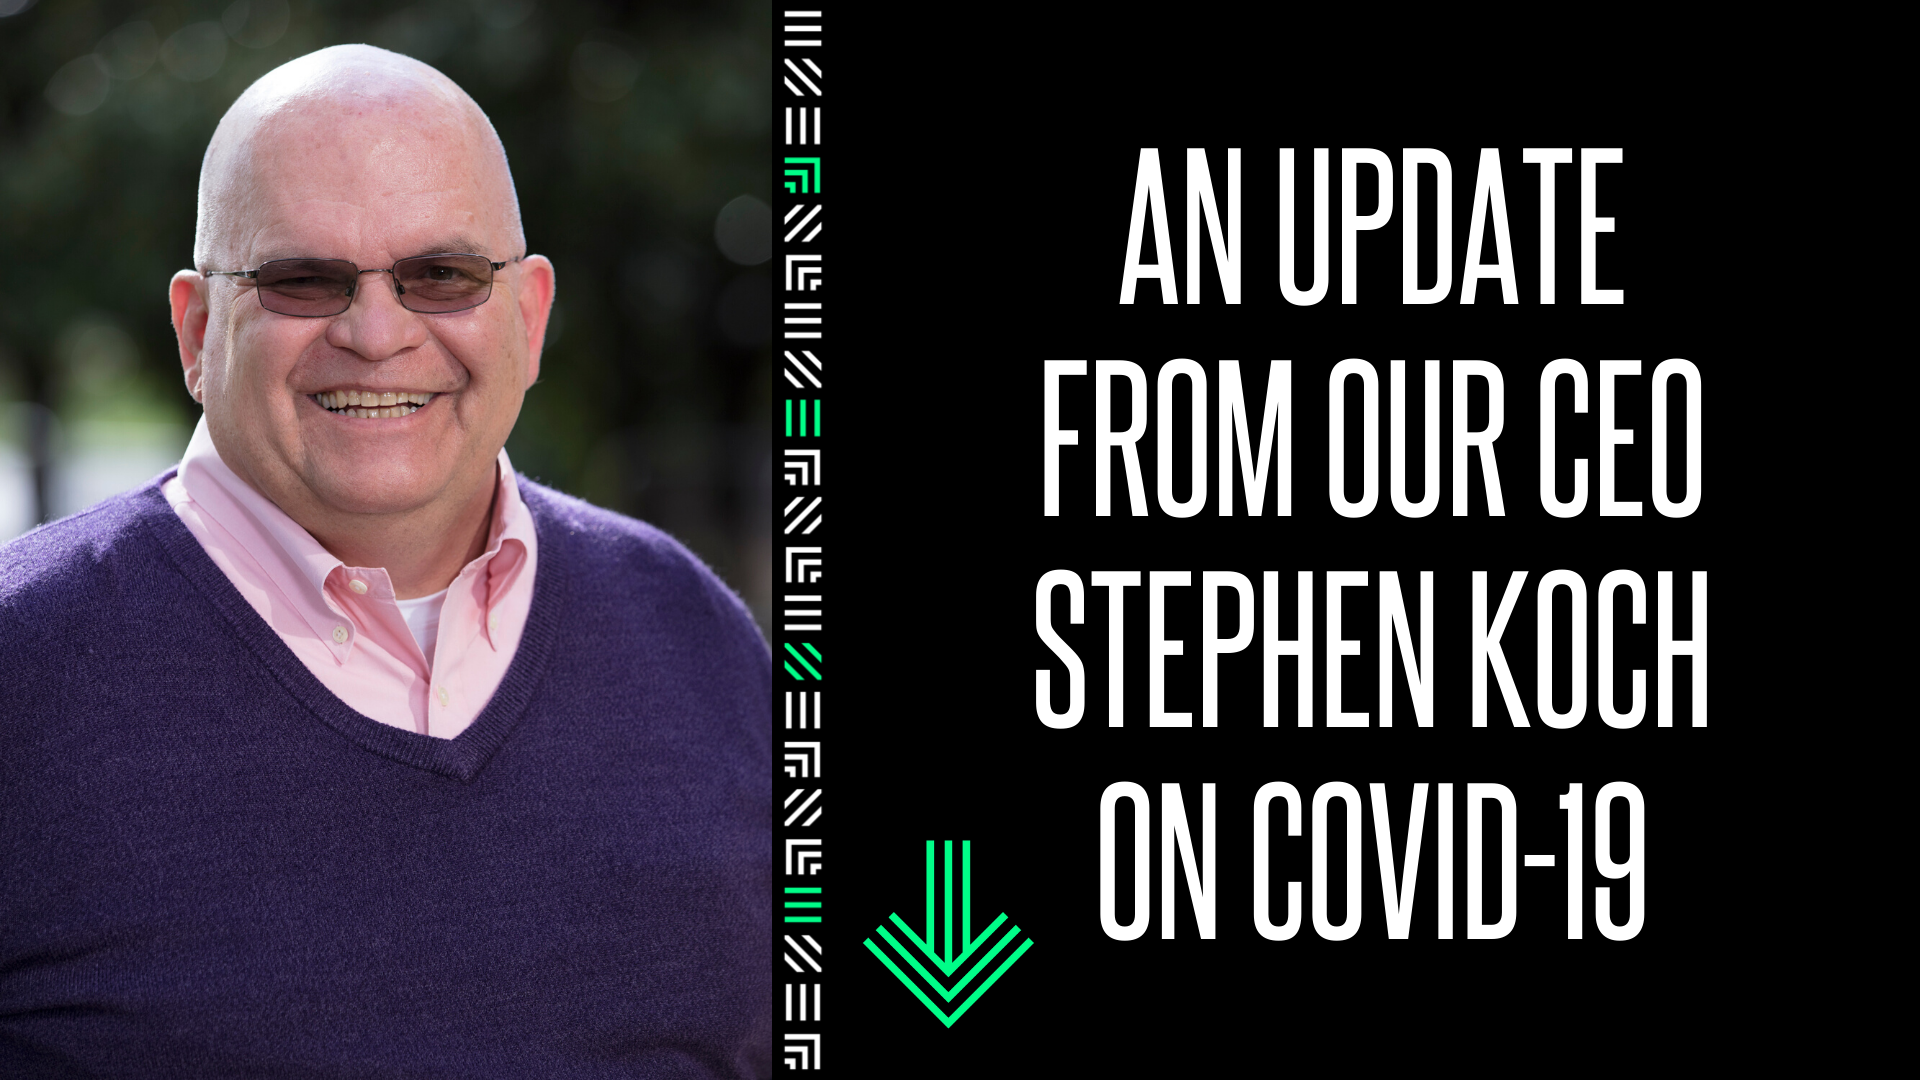 Update from CEO Stephen Koch about COVID-19